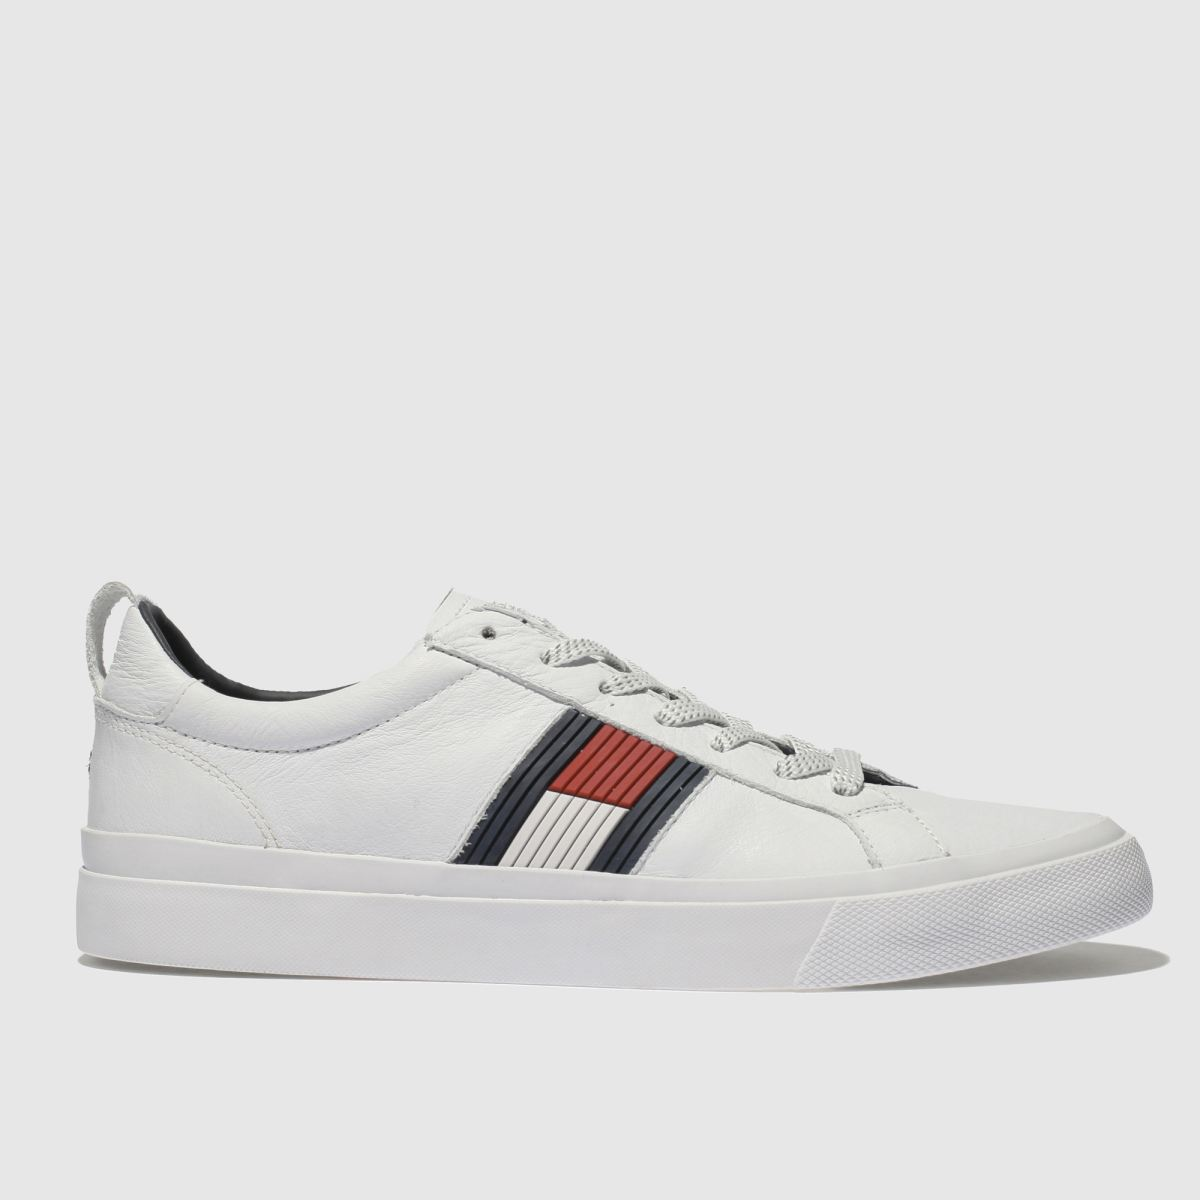 Tommy Hilfiger Tommy Hilfiger White & Navy Flag Detail Sneaker Trainers